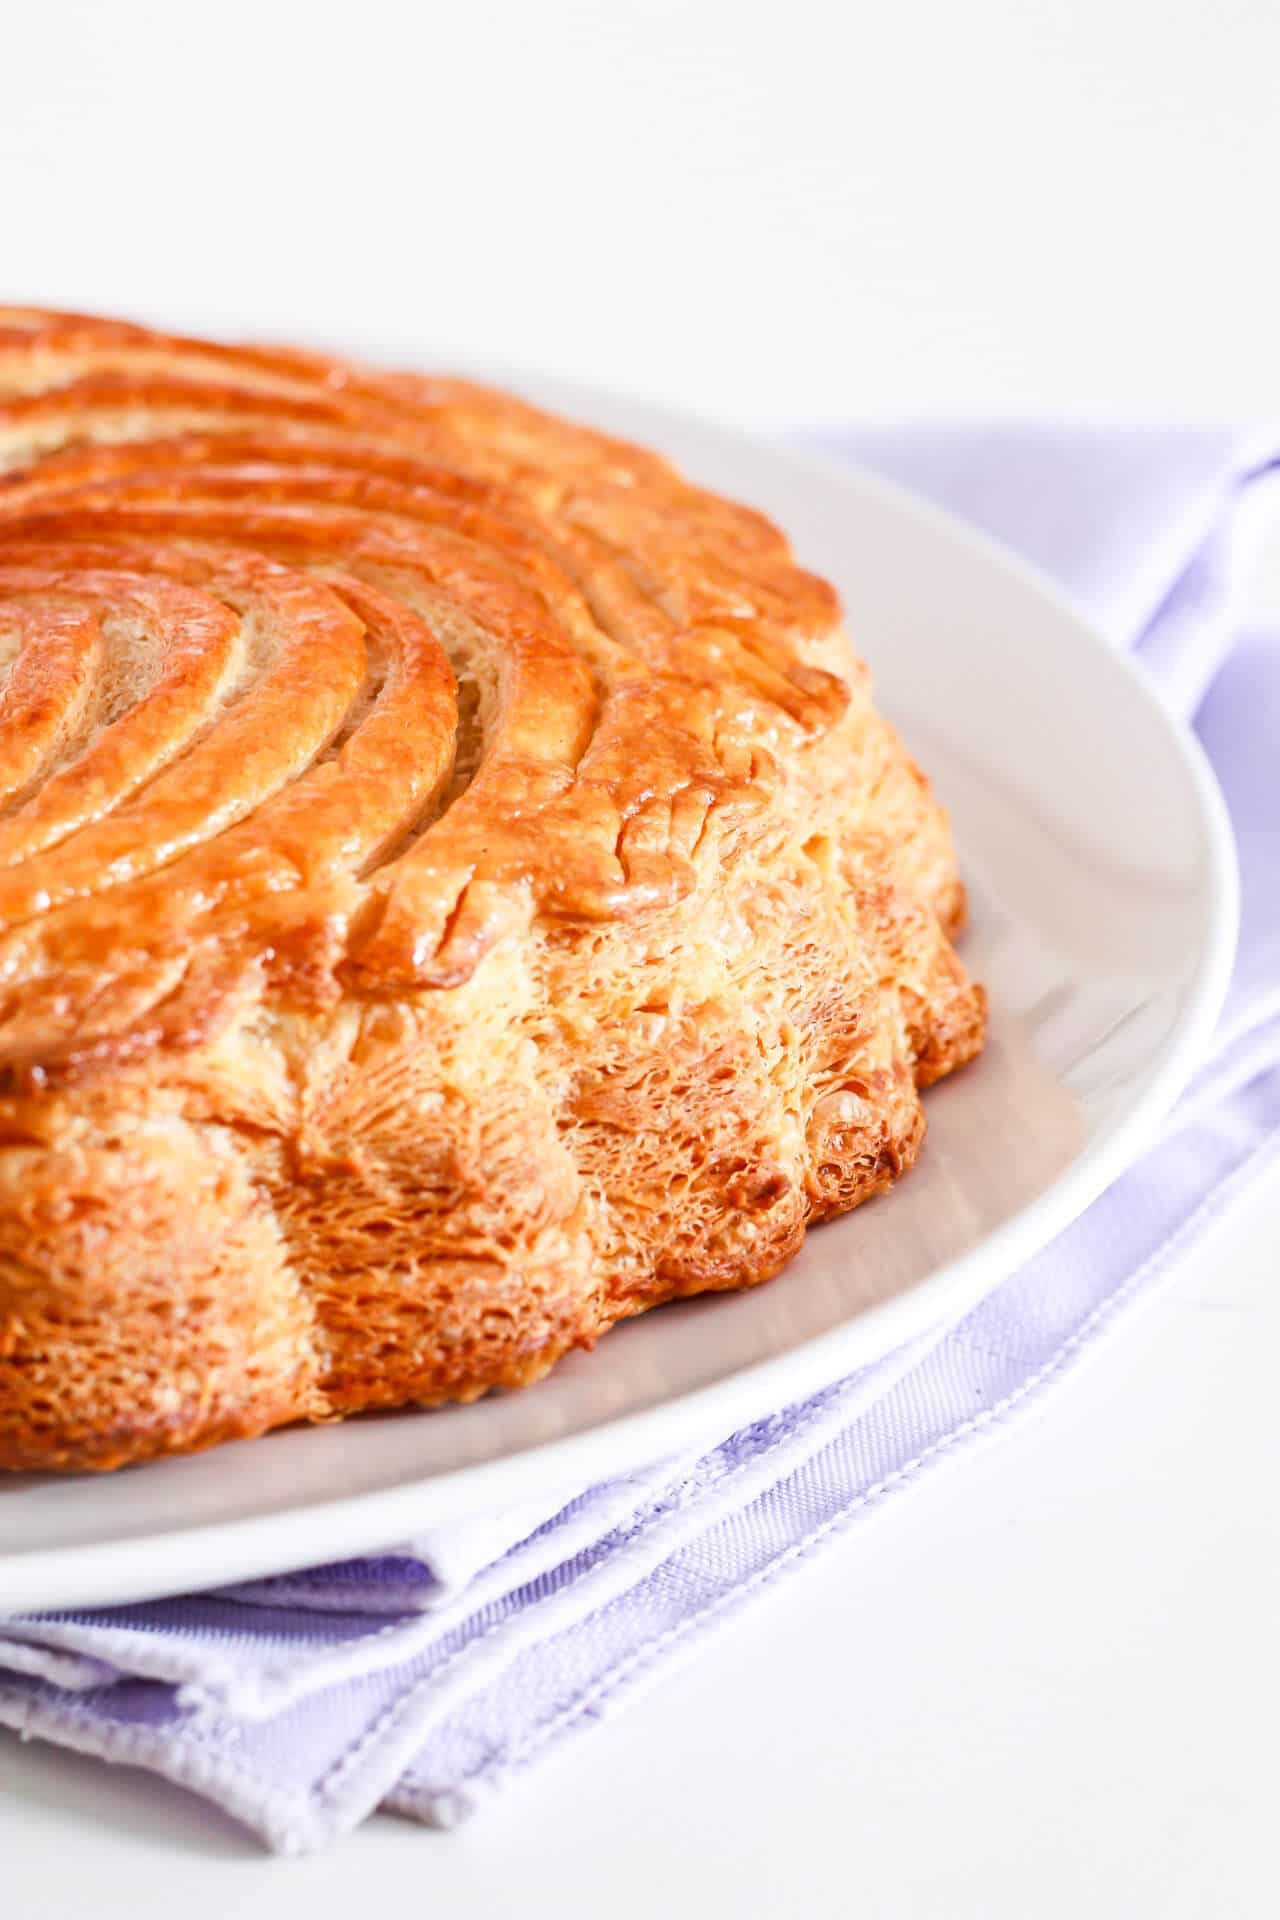 Galettes des rois (pithiviers) with a scalloped edge set on a white plate on a purple linen napkin